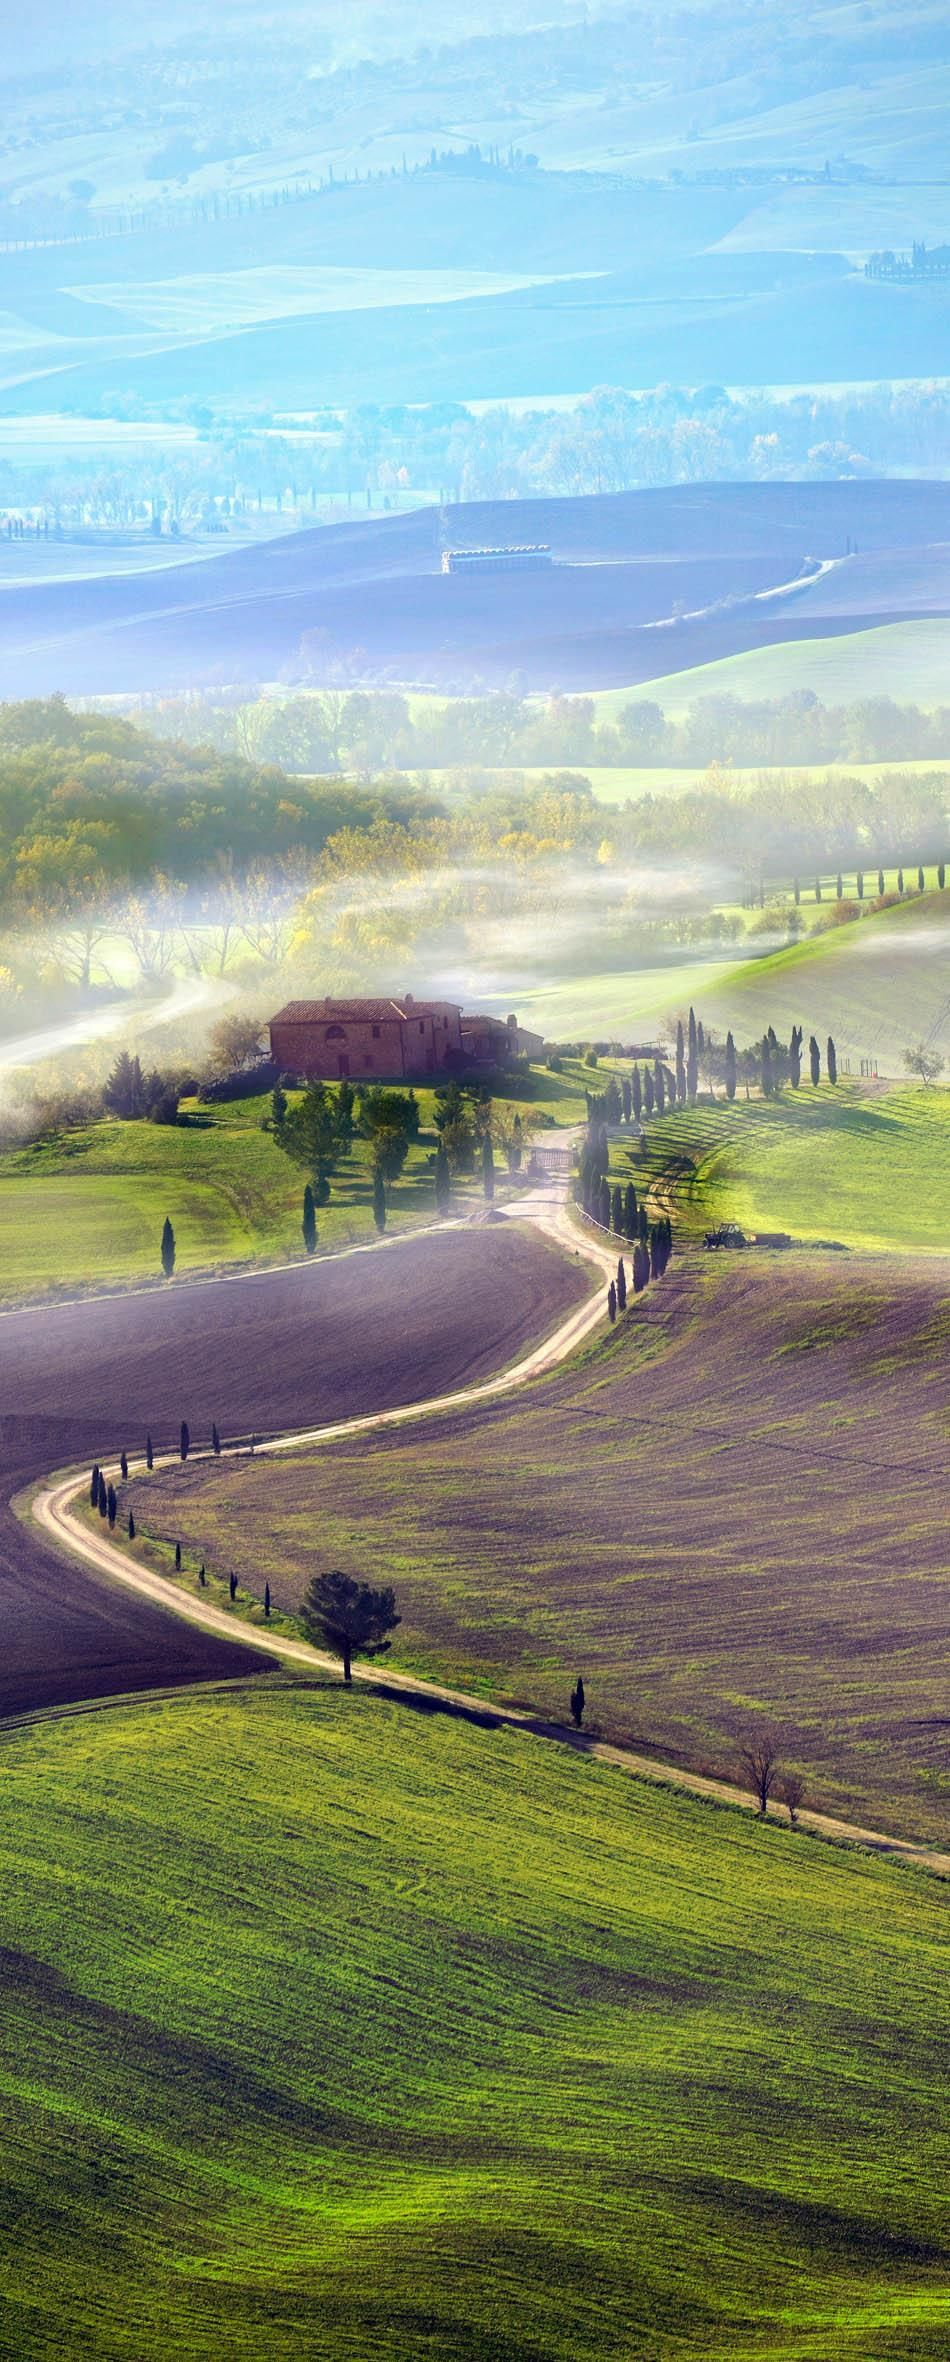 Countryside road in Tuscany, Italy | 23 Roads you Have to Drive in Your Lifetime